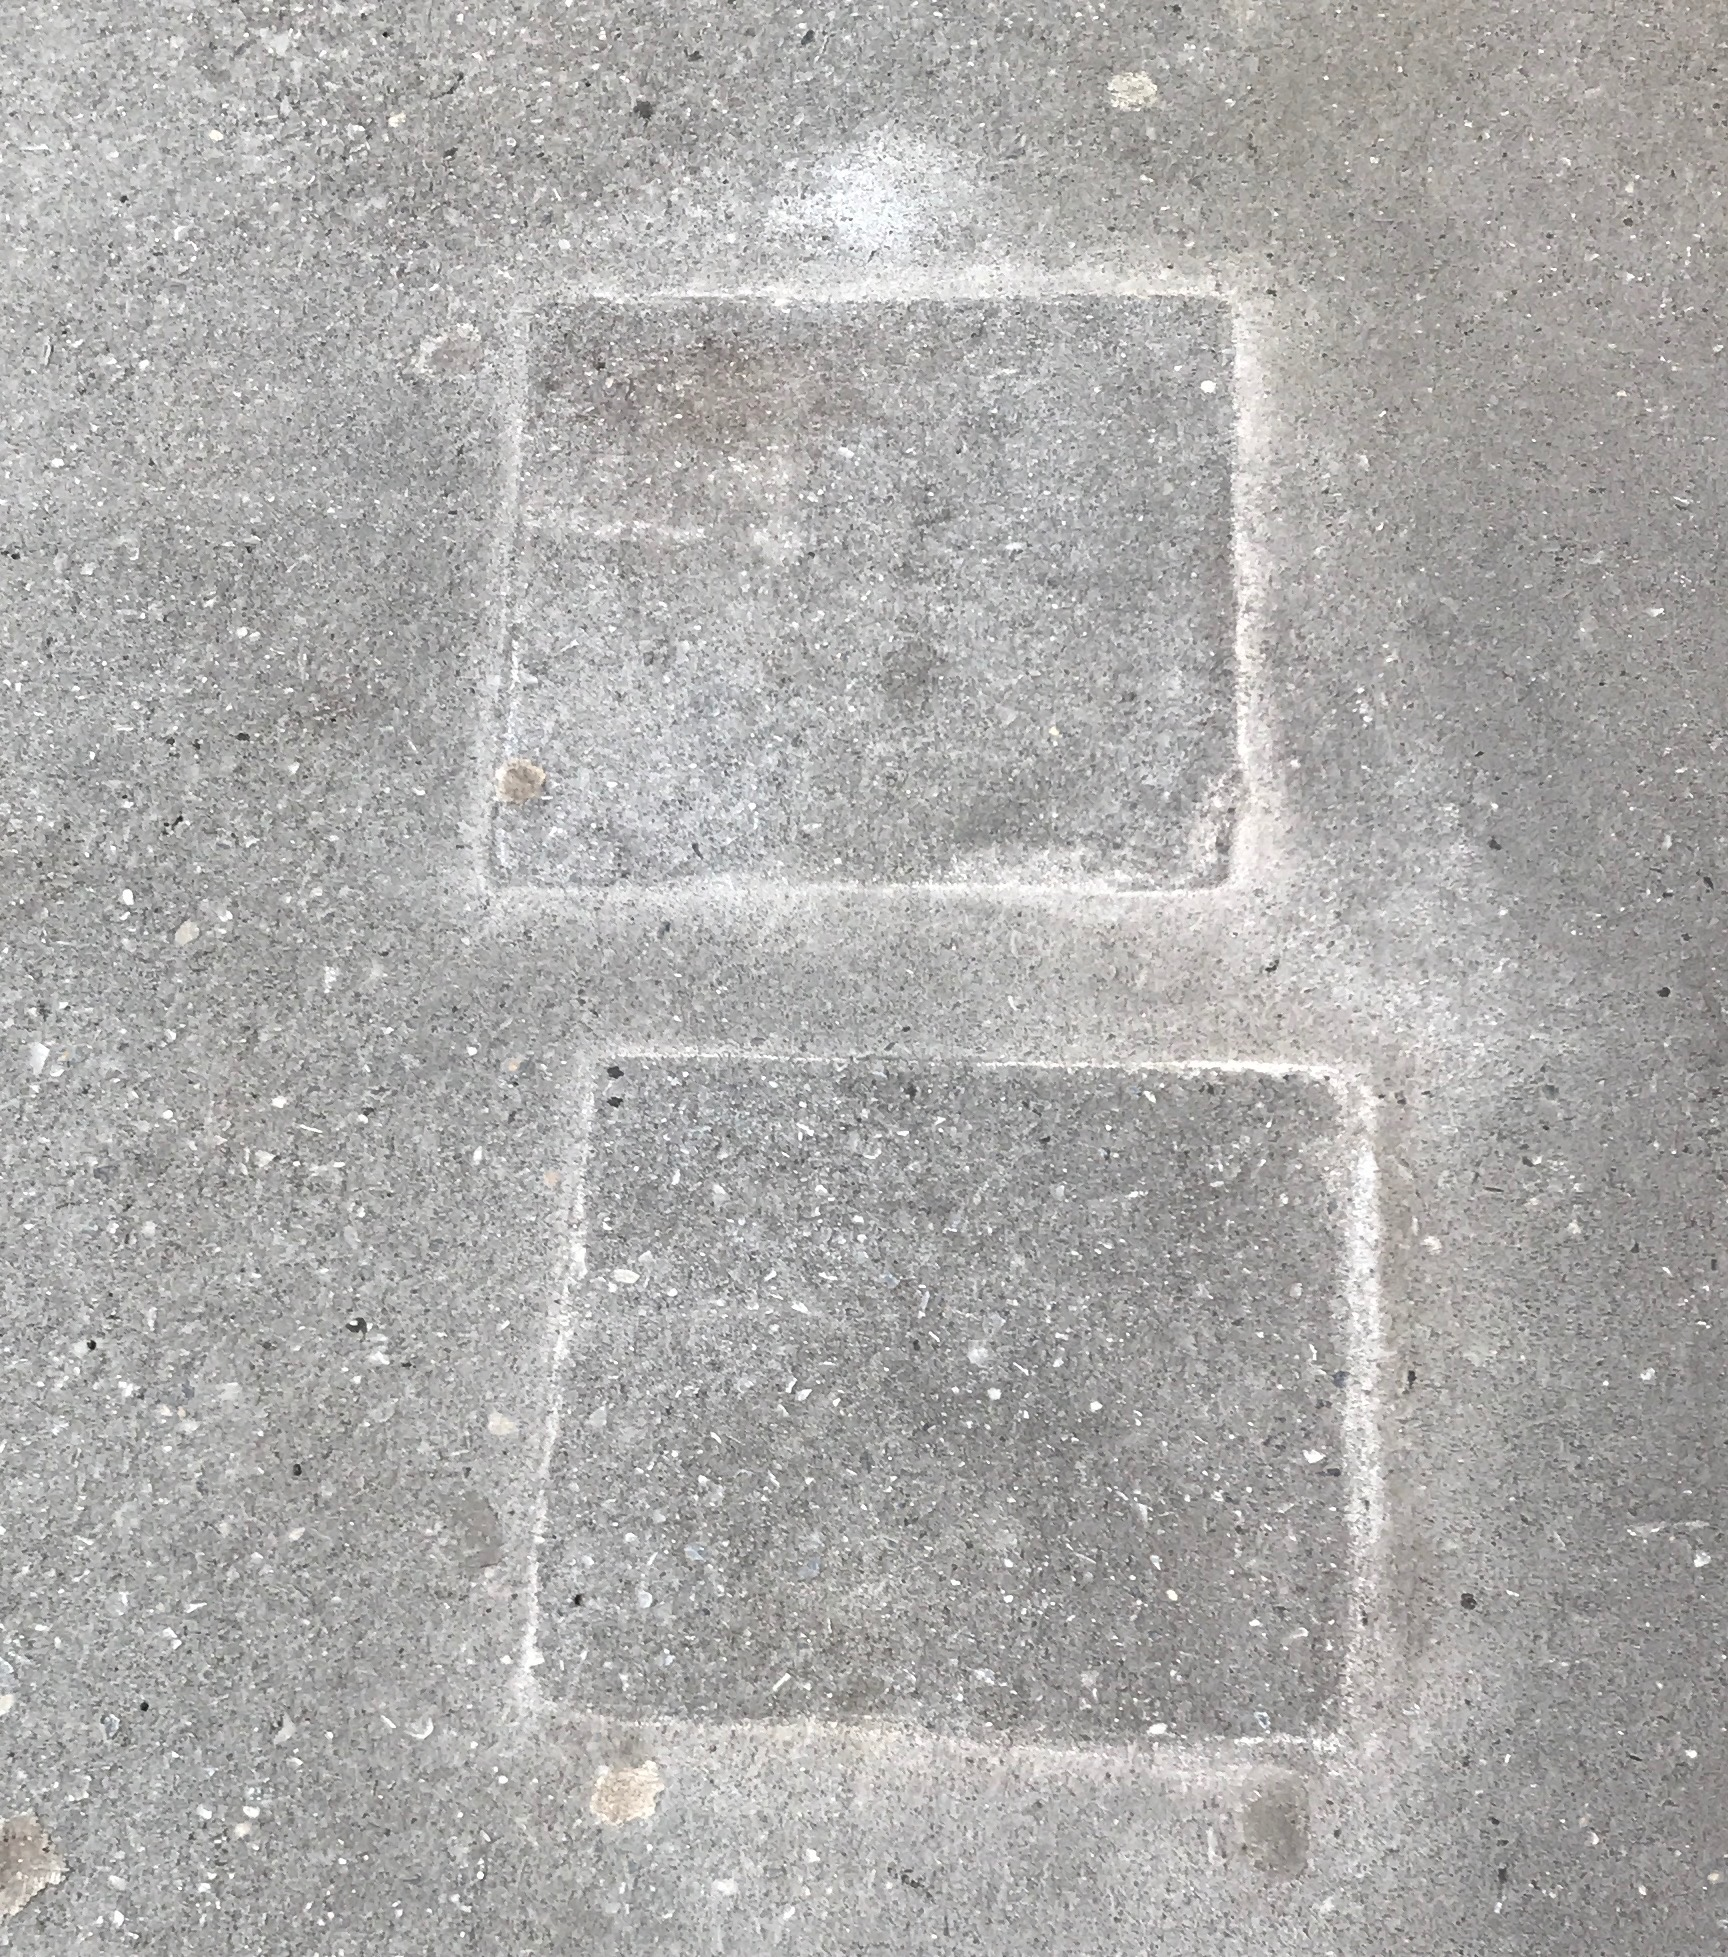 Two blocks etched into the sidewalk along West 72nd Street.